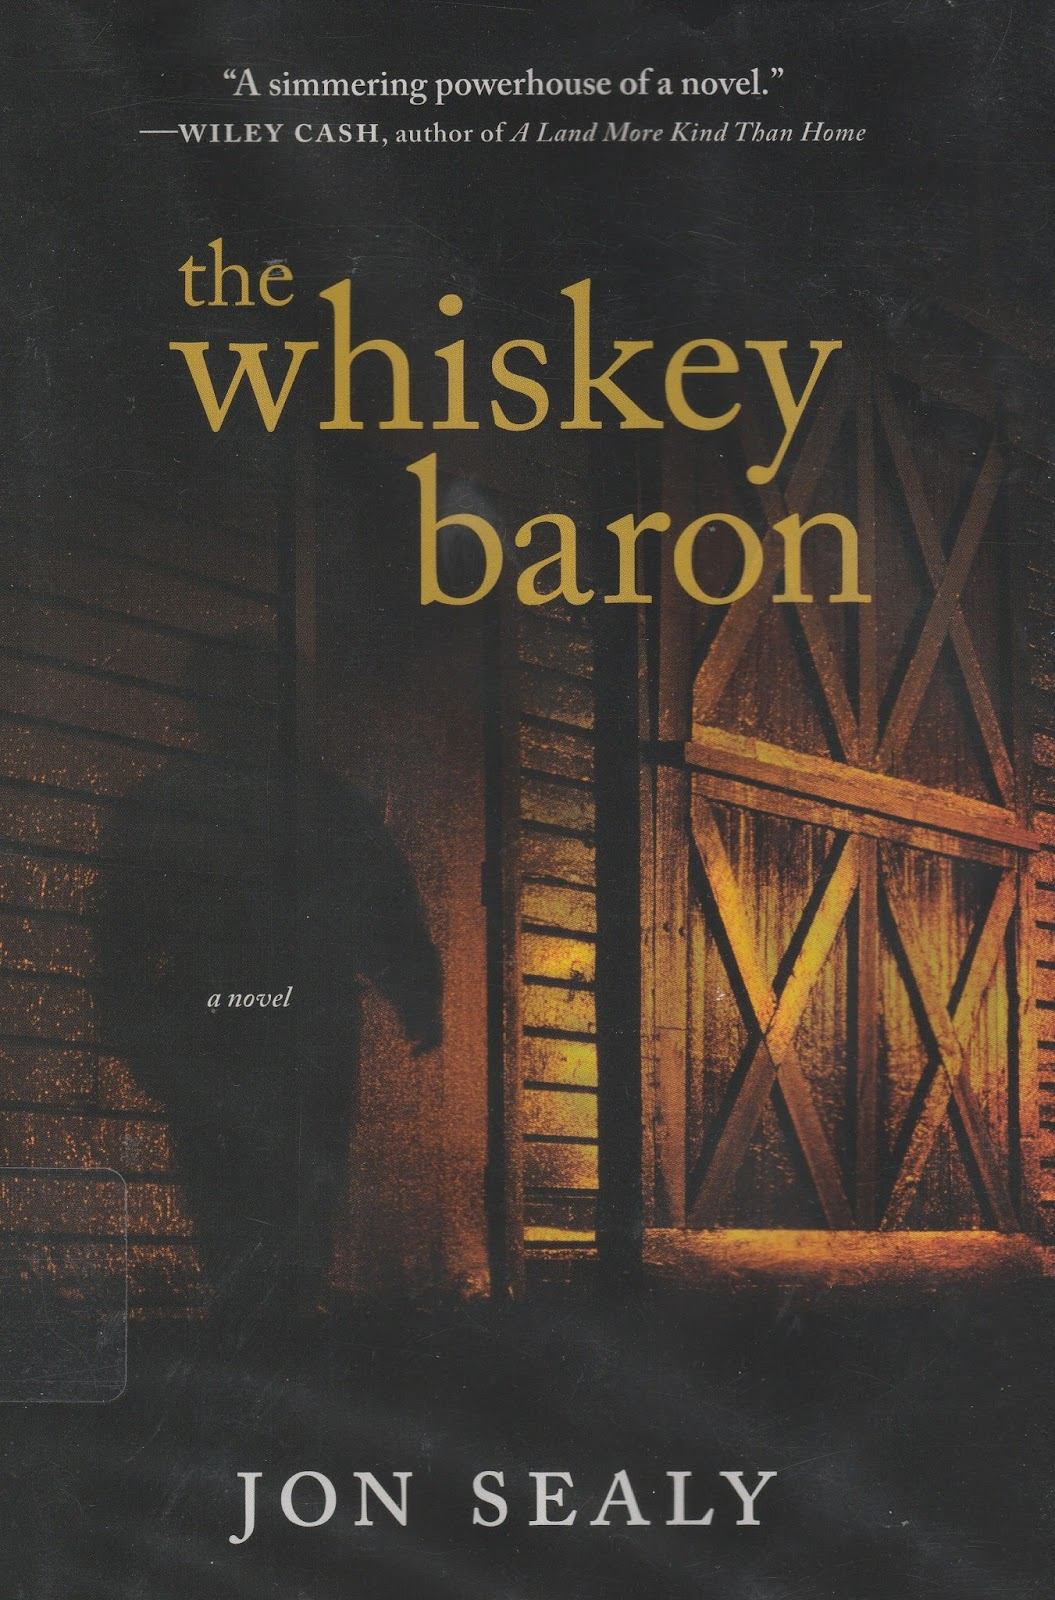 I Found The Whiskey Baron On The Friends Of The Library Bookshelf At Our  Local Library (all Books Are 10c) Jon Sealy Is A Gifted Writer (the  Whiskey Baron